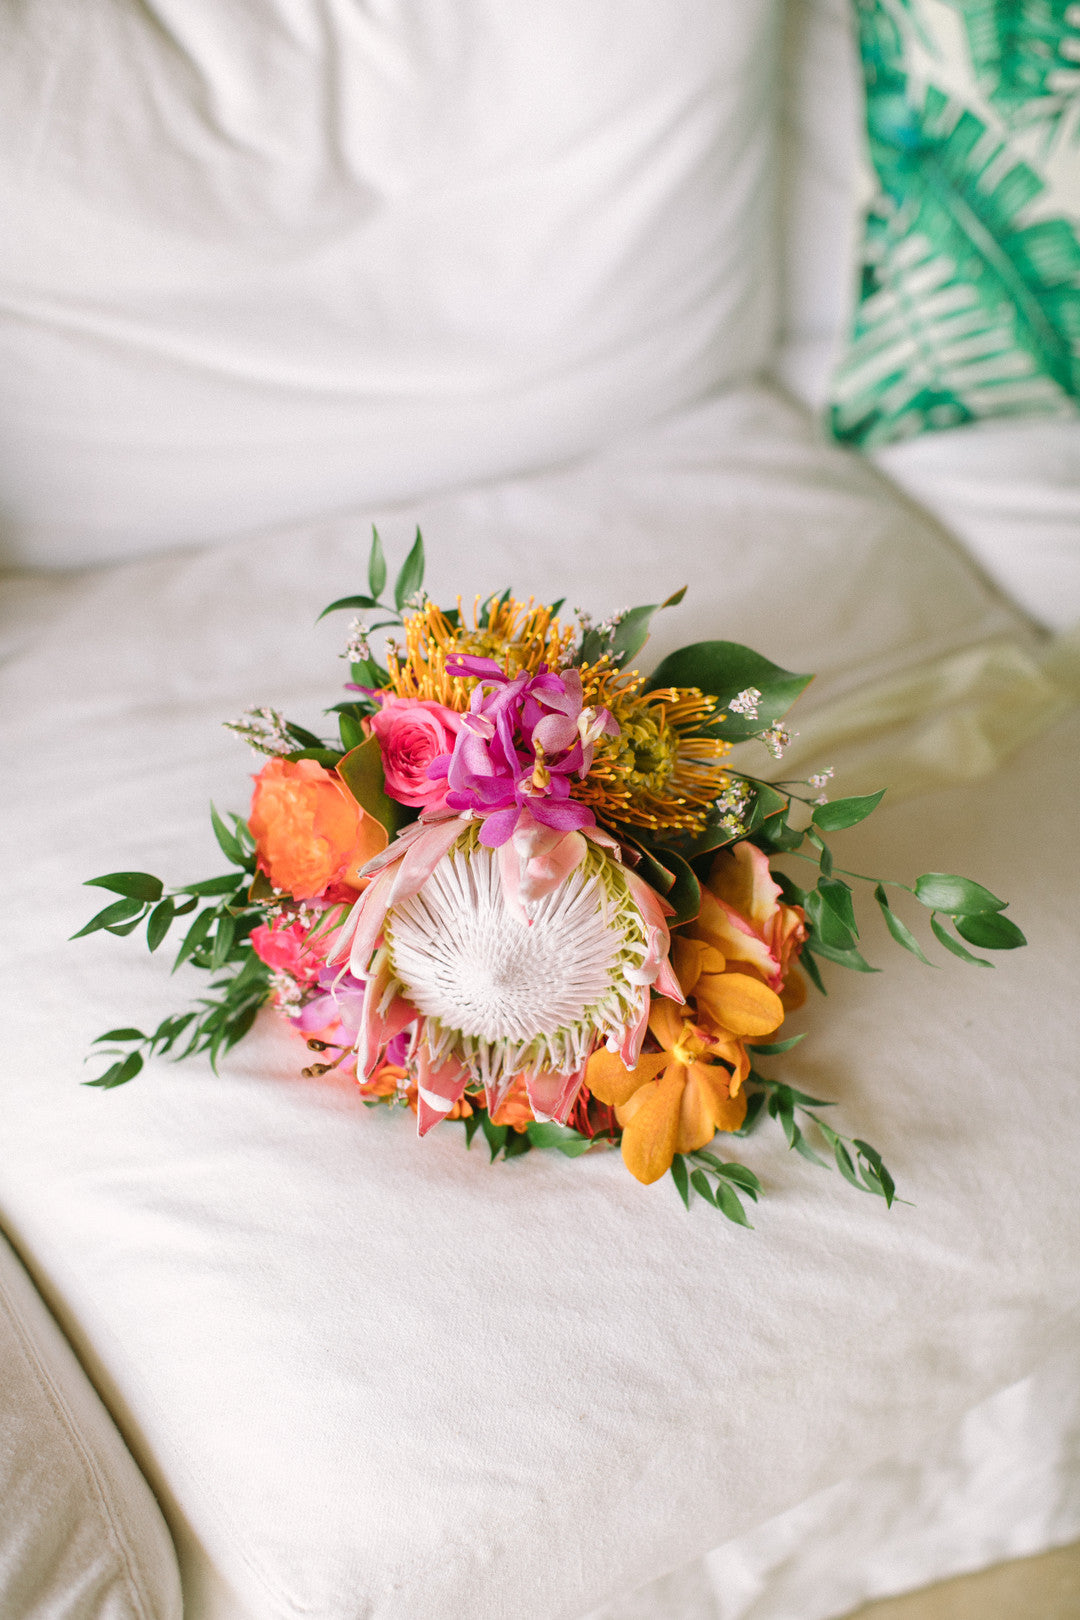 Floral Bouquet | A Dreamy Destination Wedding at St. Thomas | Kate Aspen